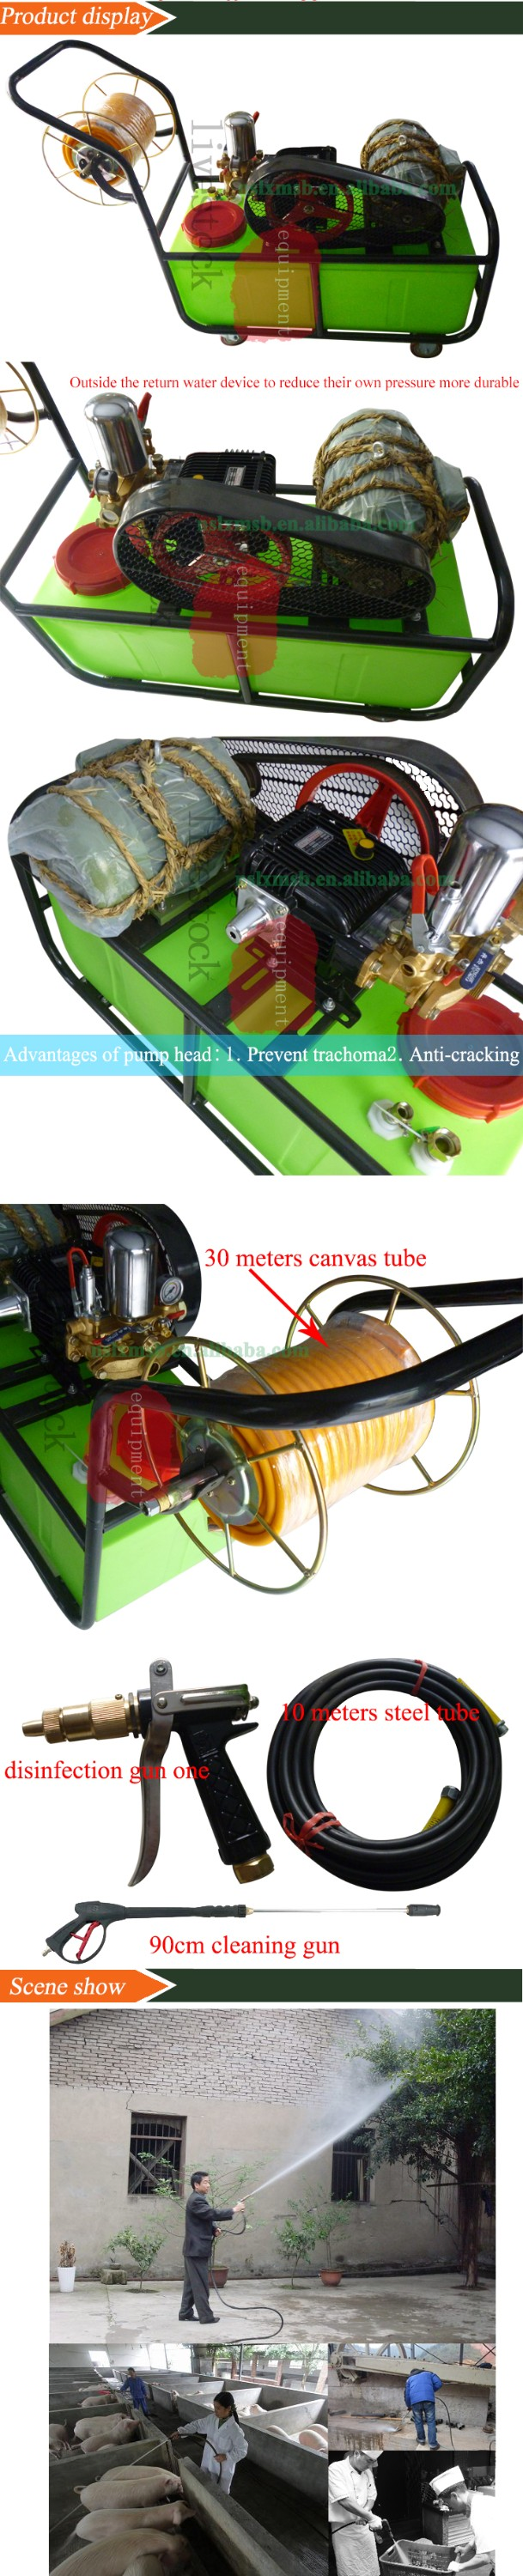 High Pressure Cleaning Disinfection Equipment For Poultry